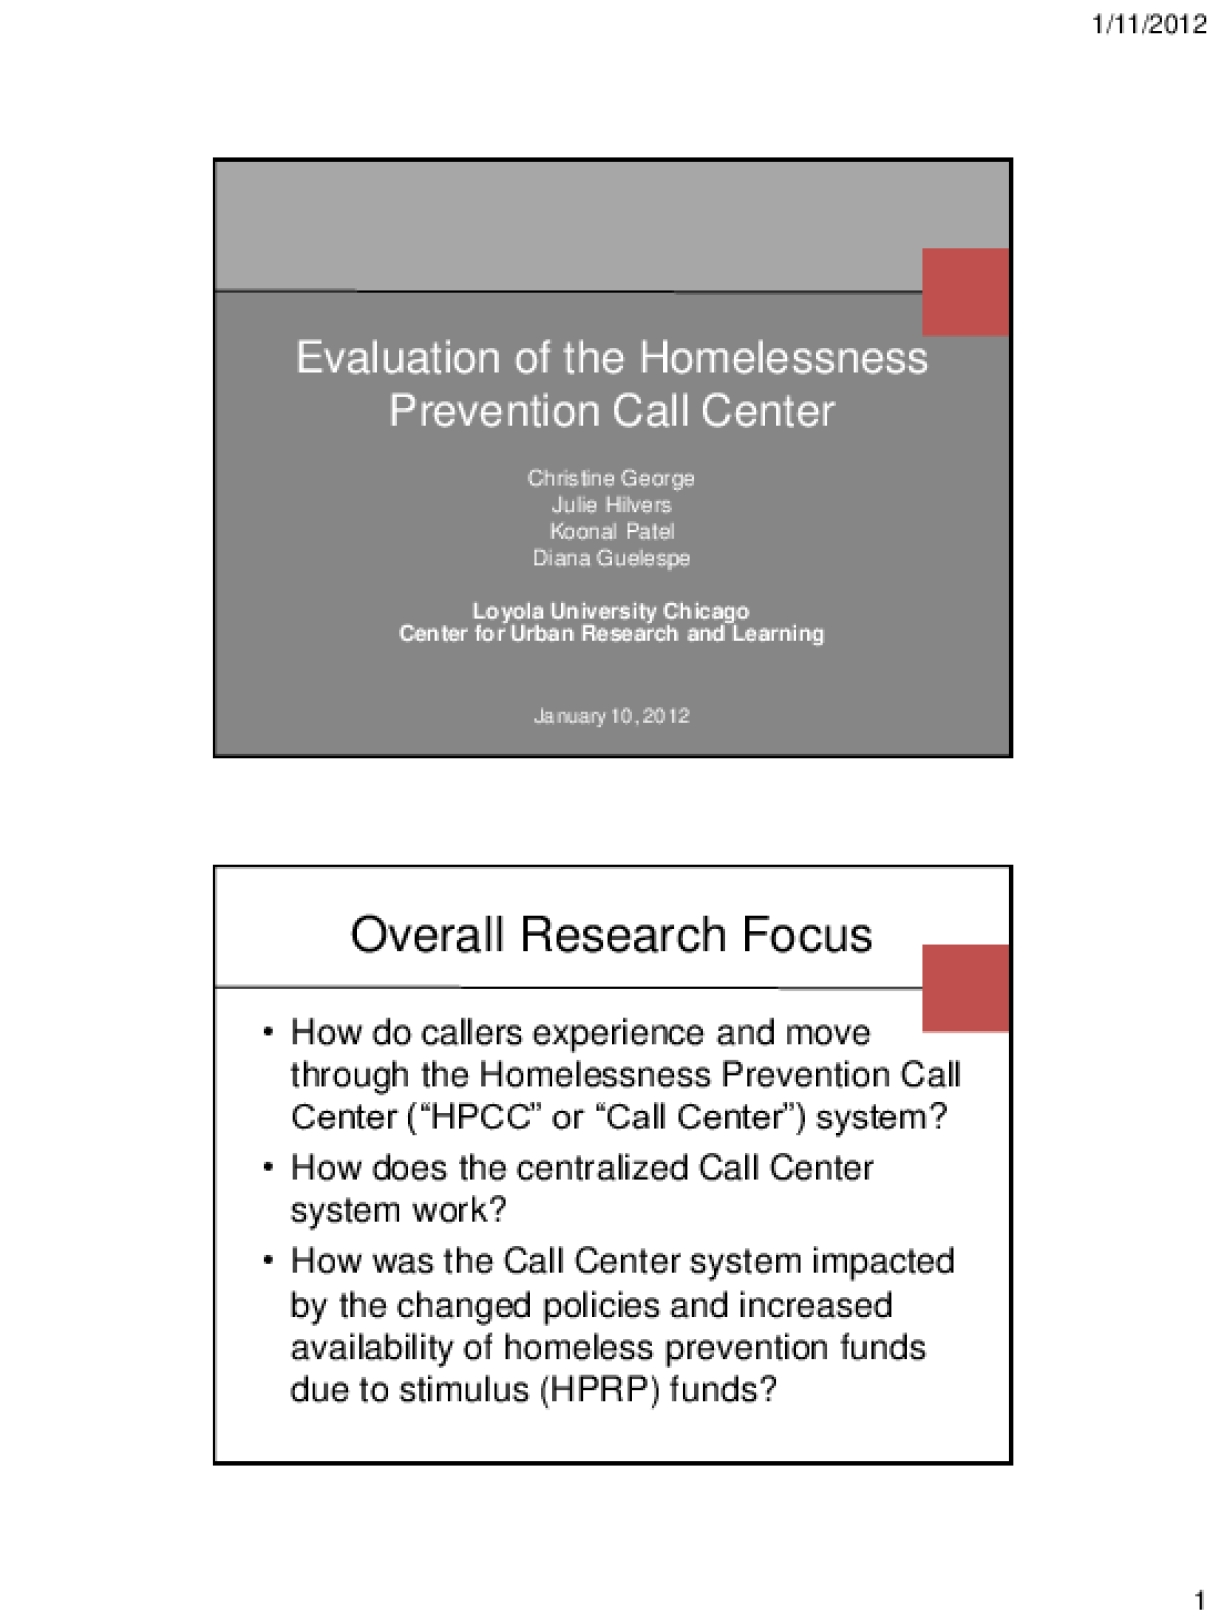 Evaluation of the Homelessness  Prevention Call Center: Presentation